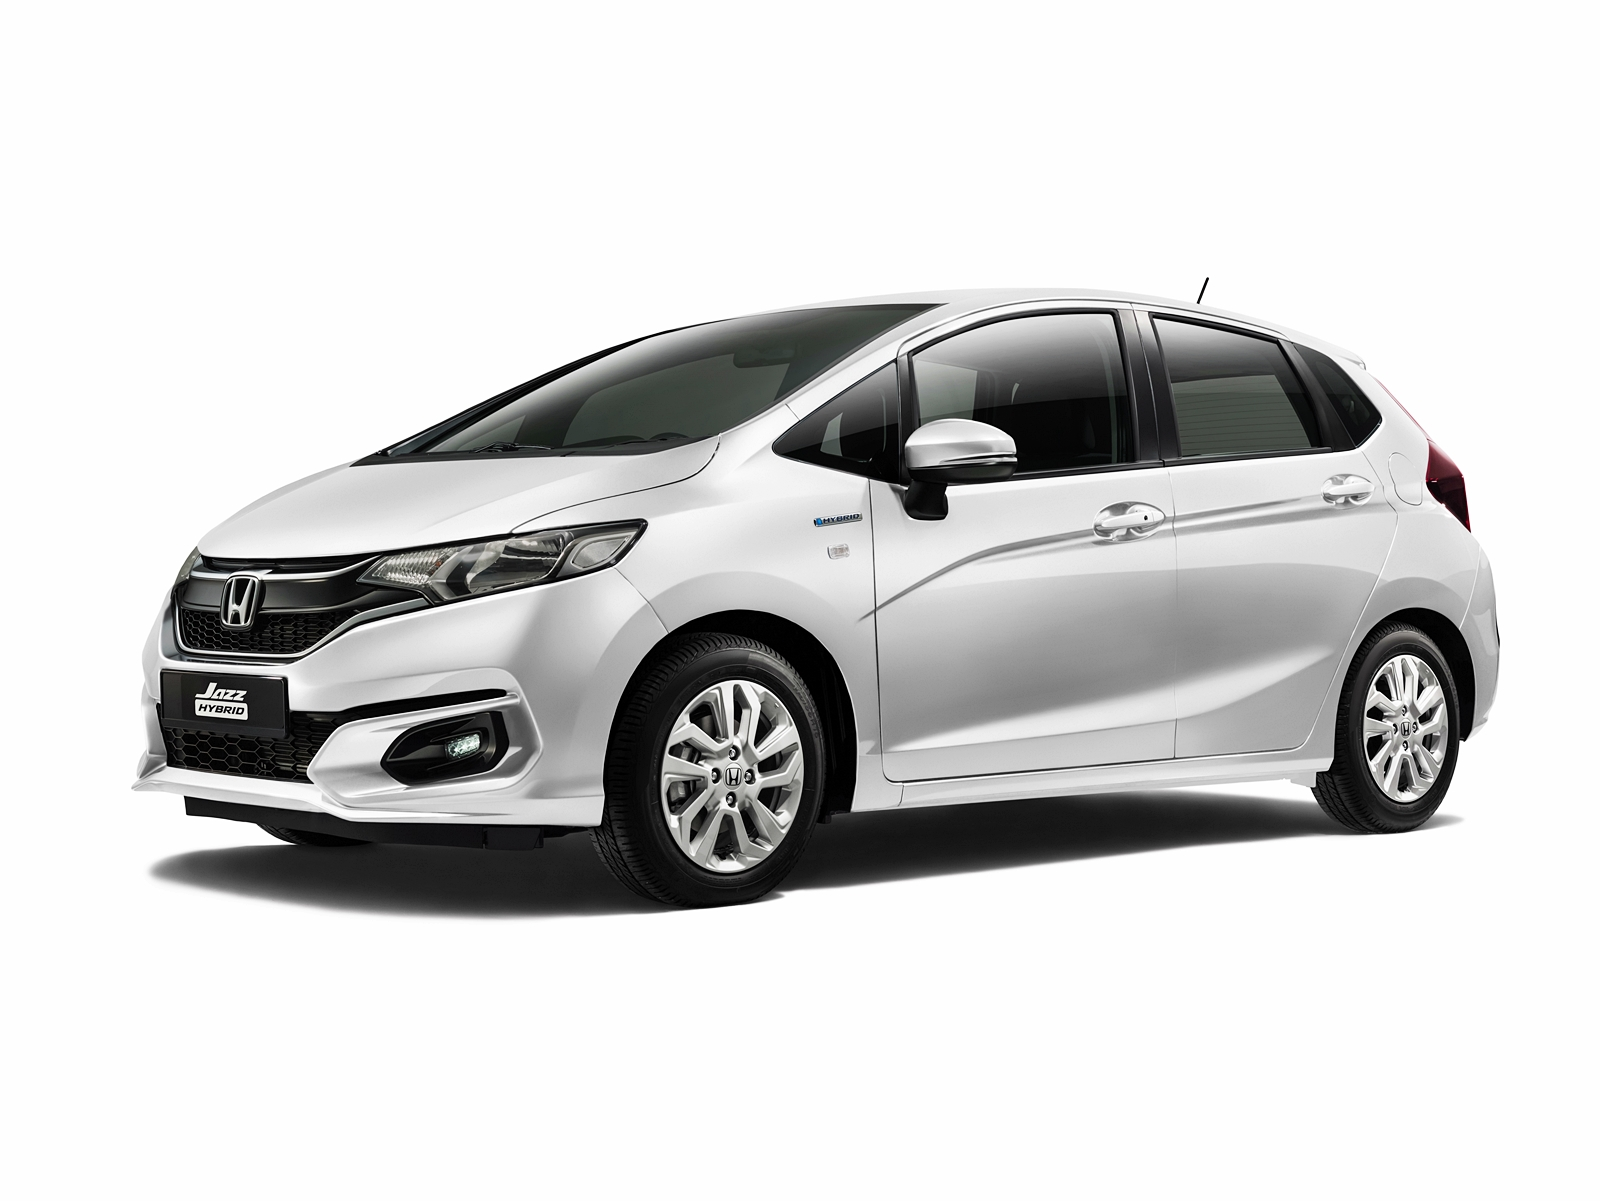 Image result for kereta honda jazz